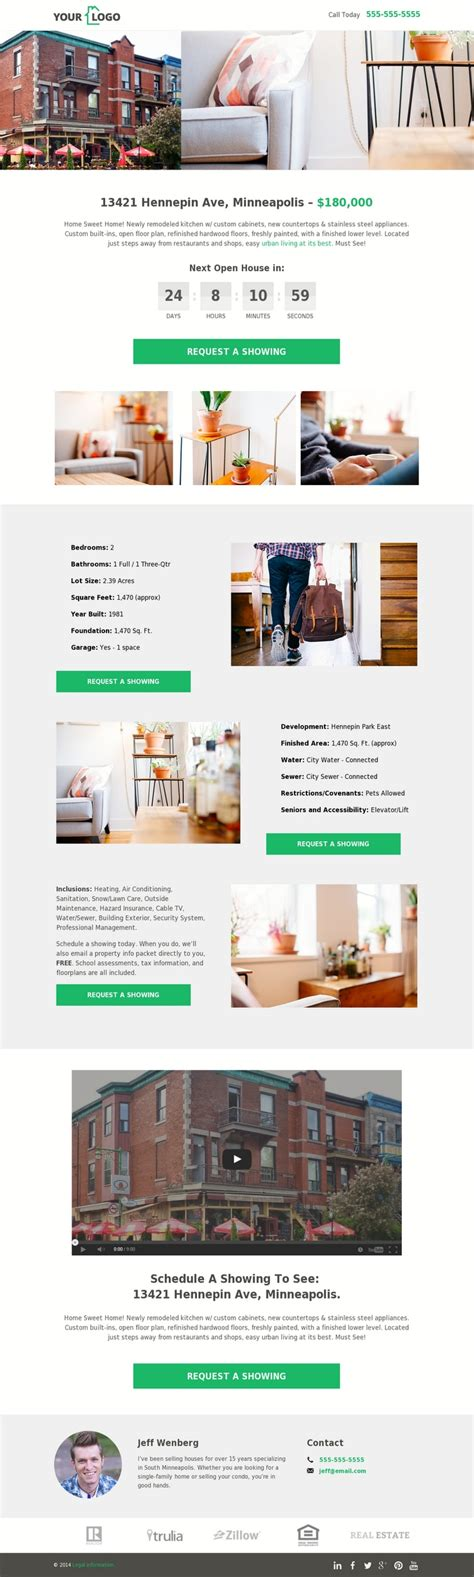 5 Real Estate Templates For Building High Converting Landing Pages Leadpages Blog Real Estate Landing Page Template Free